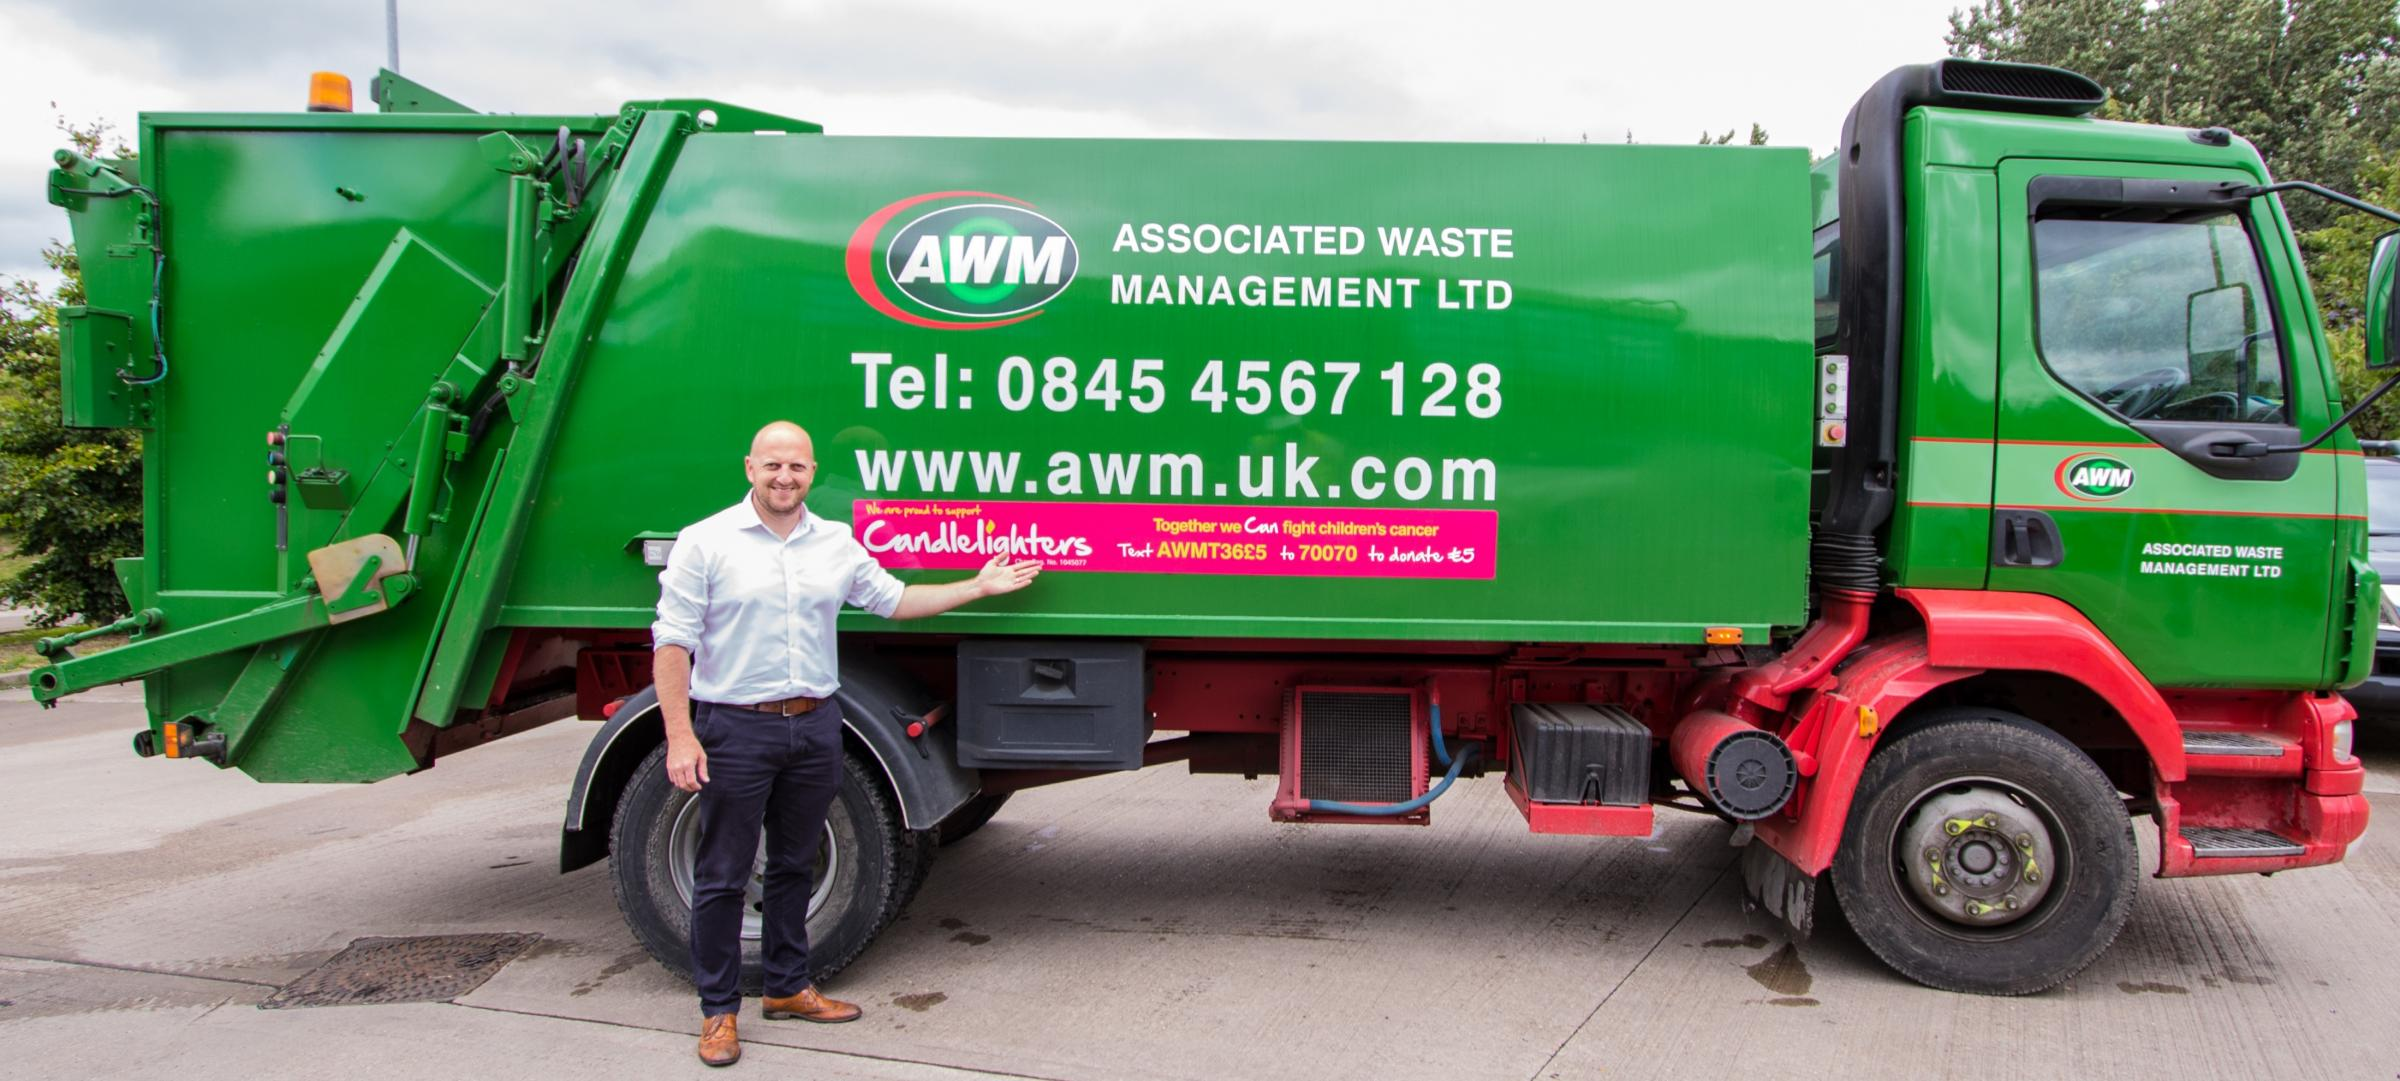 Mike Robinson, Associated Waste Management's group marketing manager, which is supporting the Candlelighters charity on its vehicles